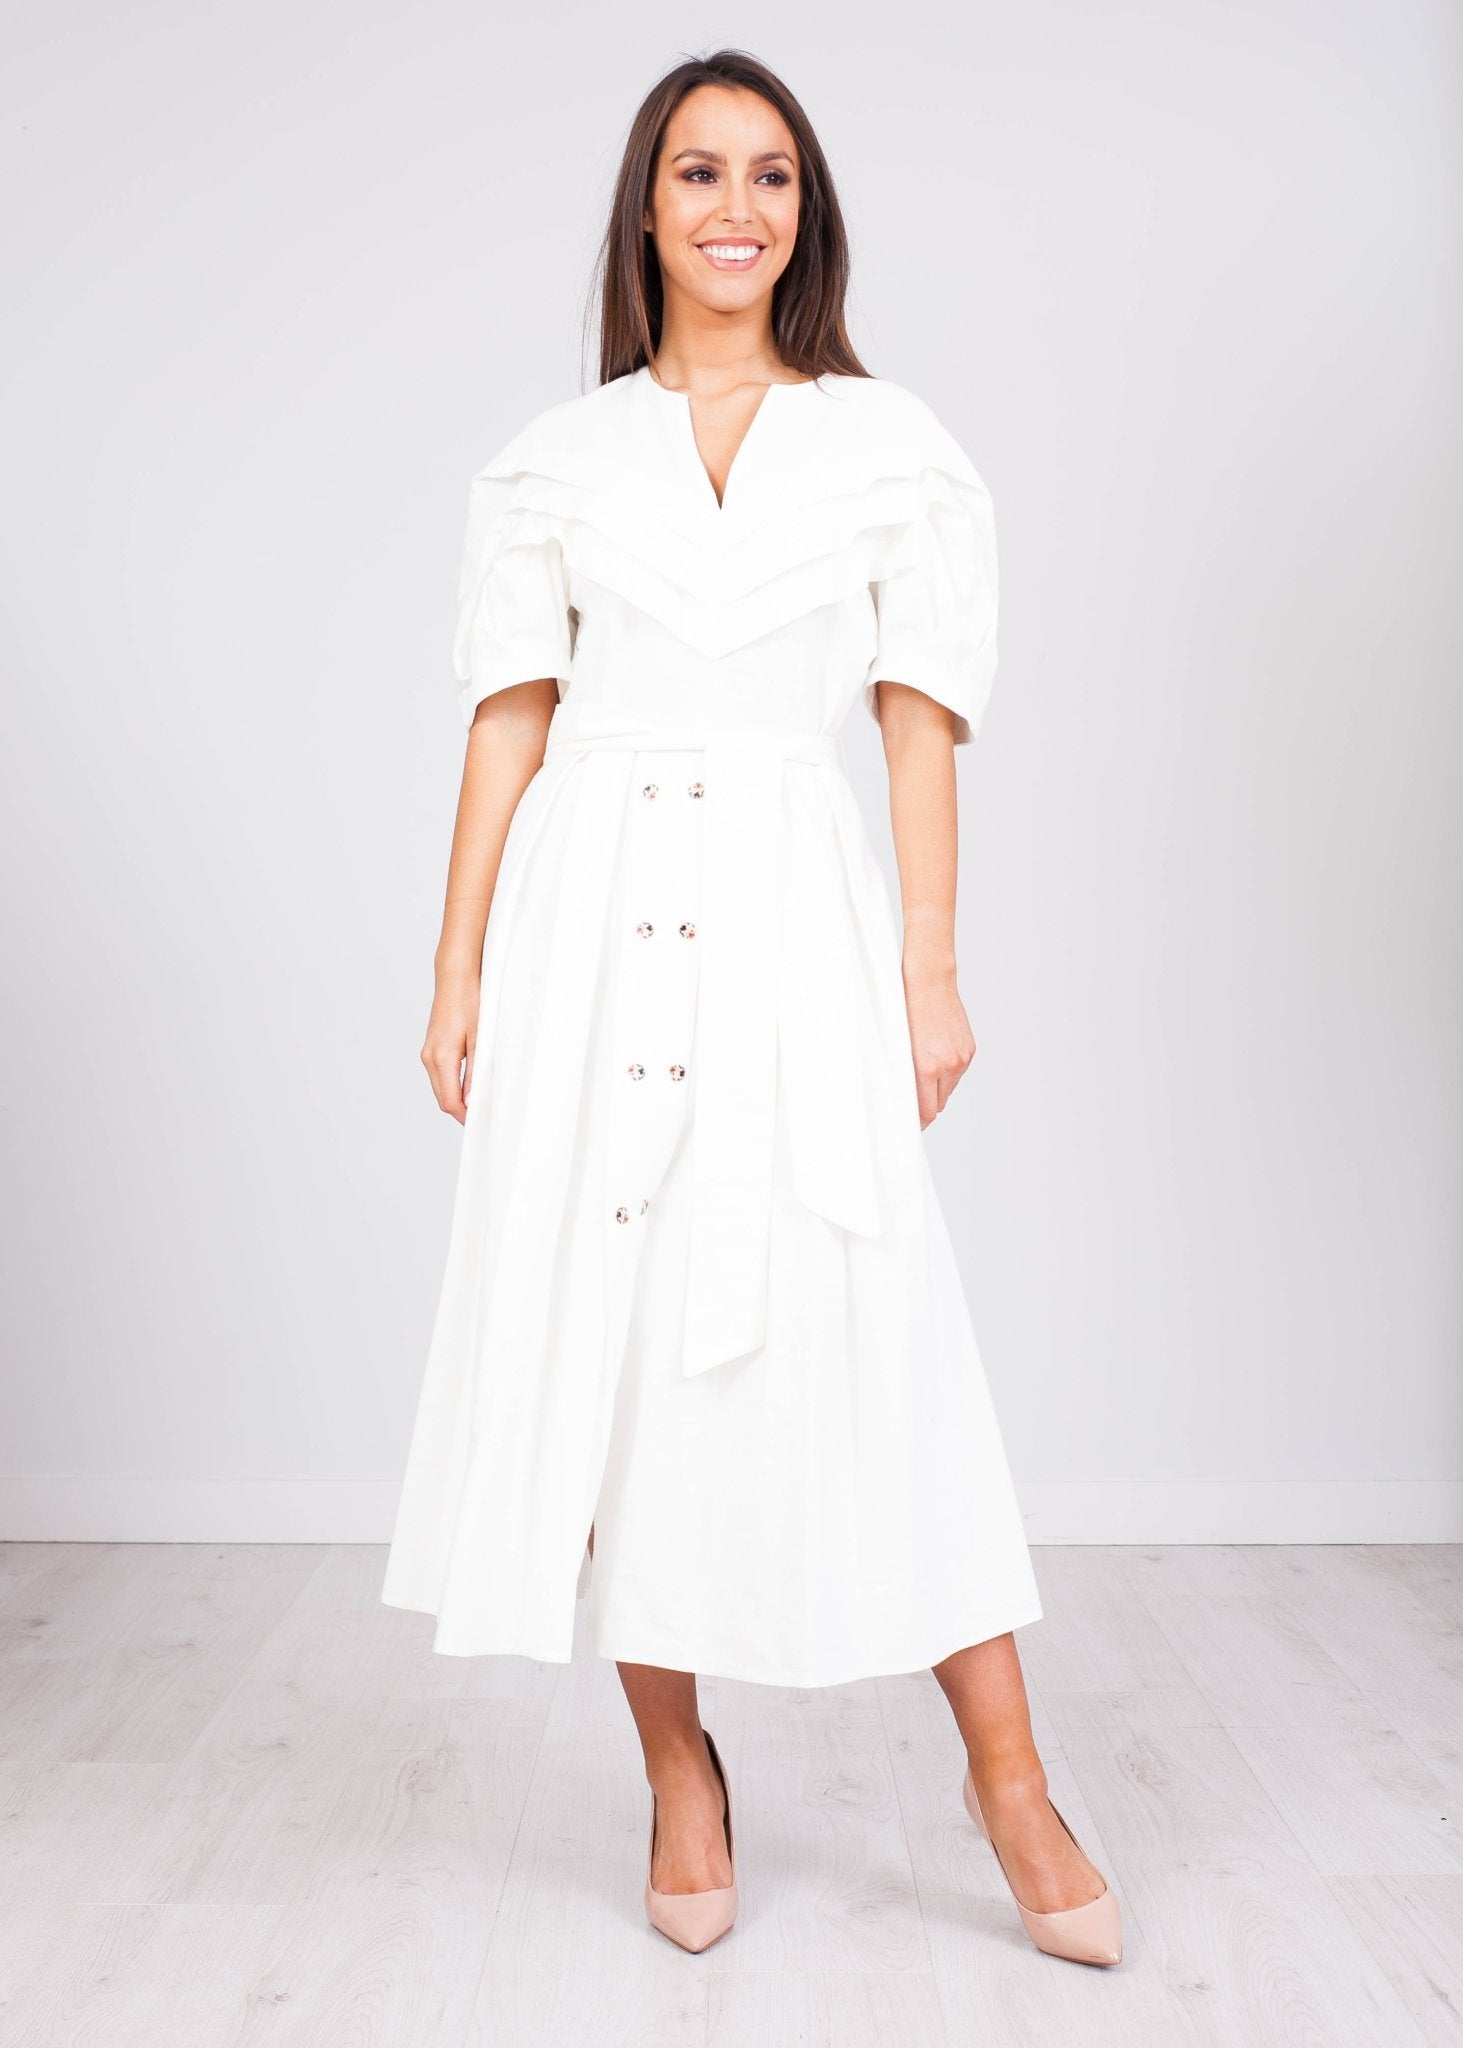 Eva White Button Front Dress - The Walk in Wardrobe